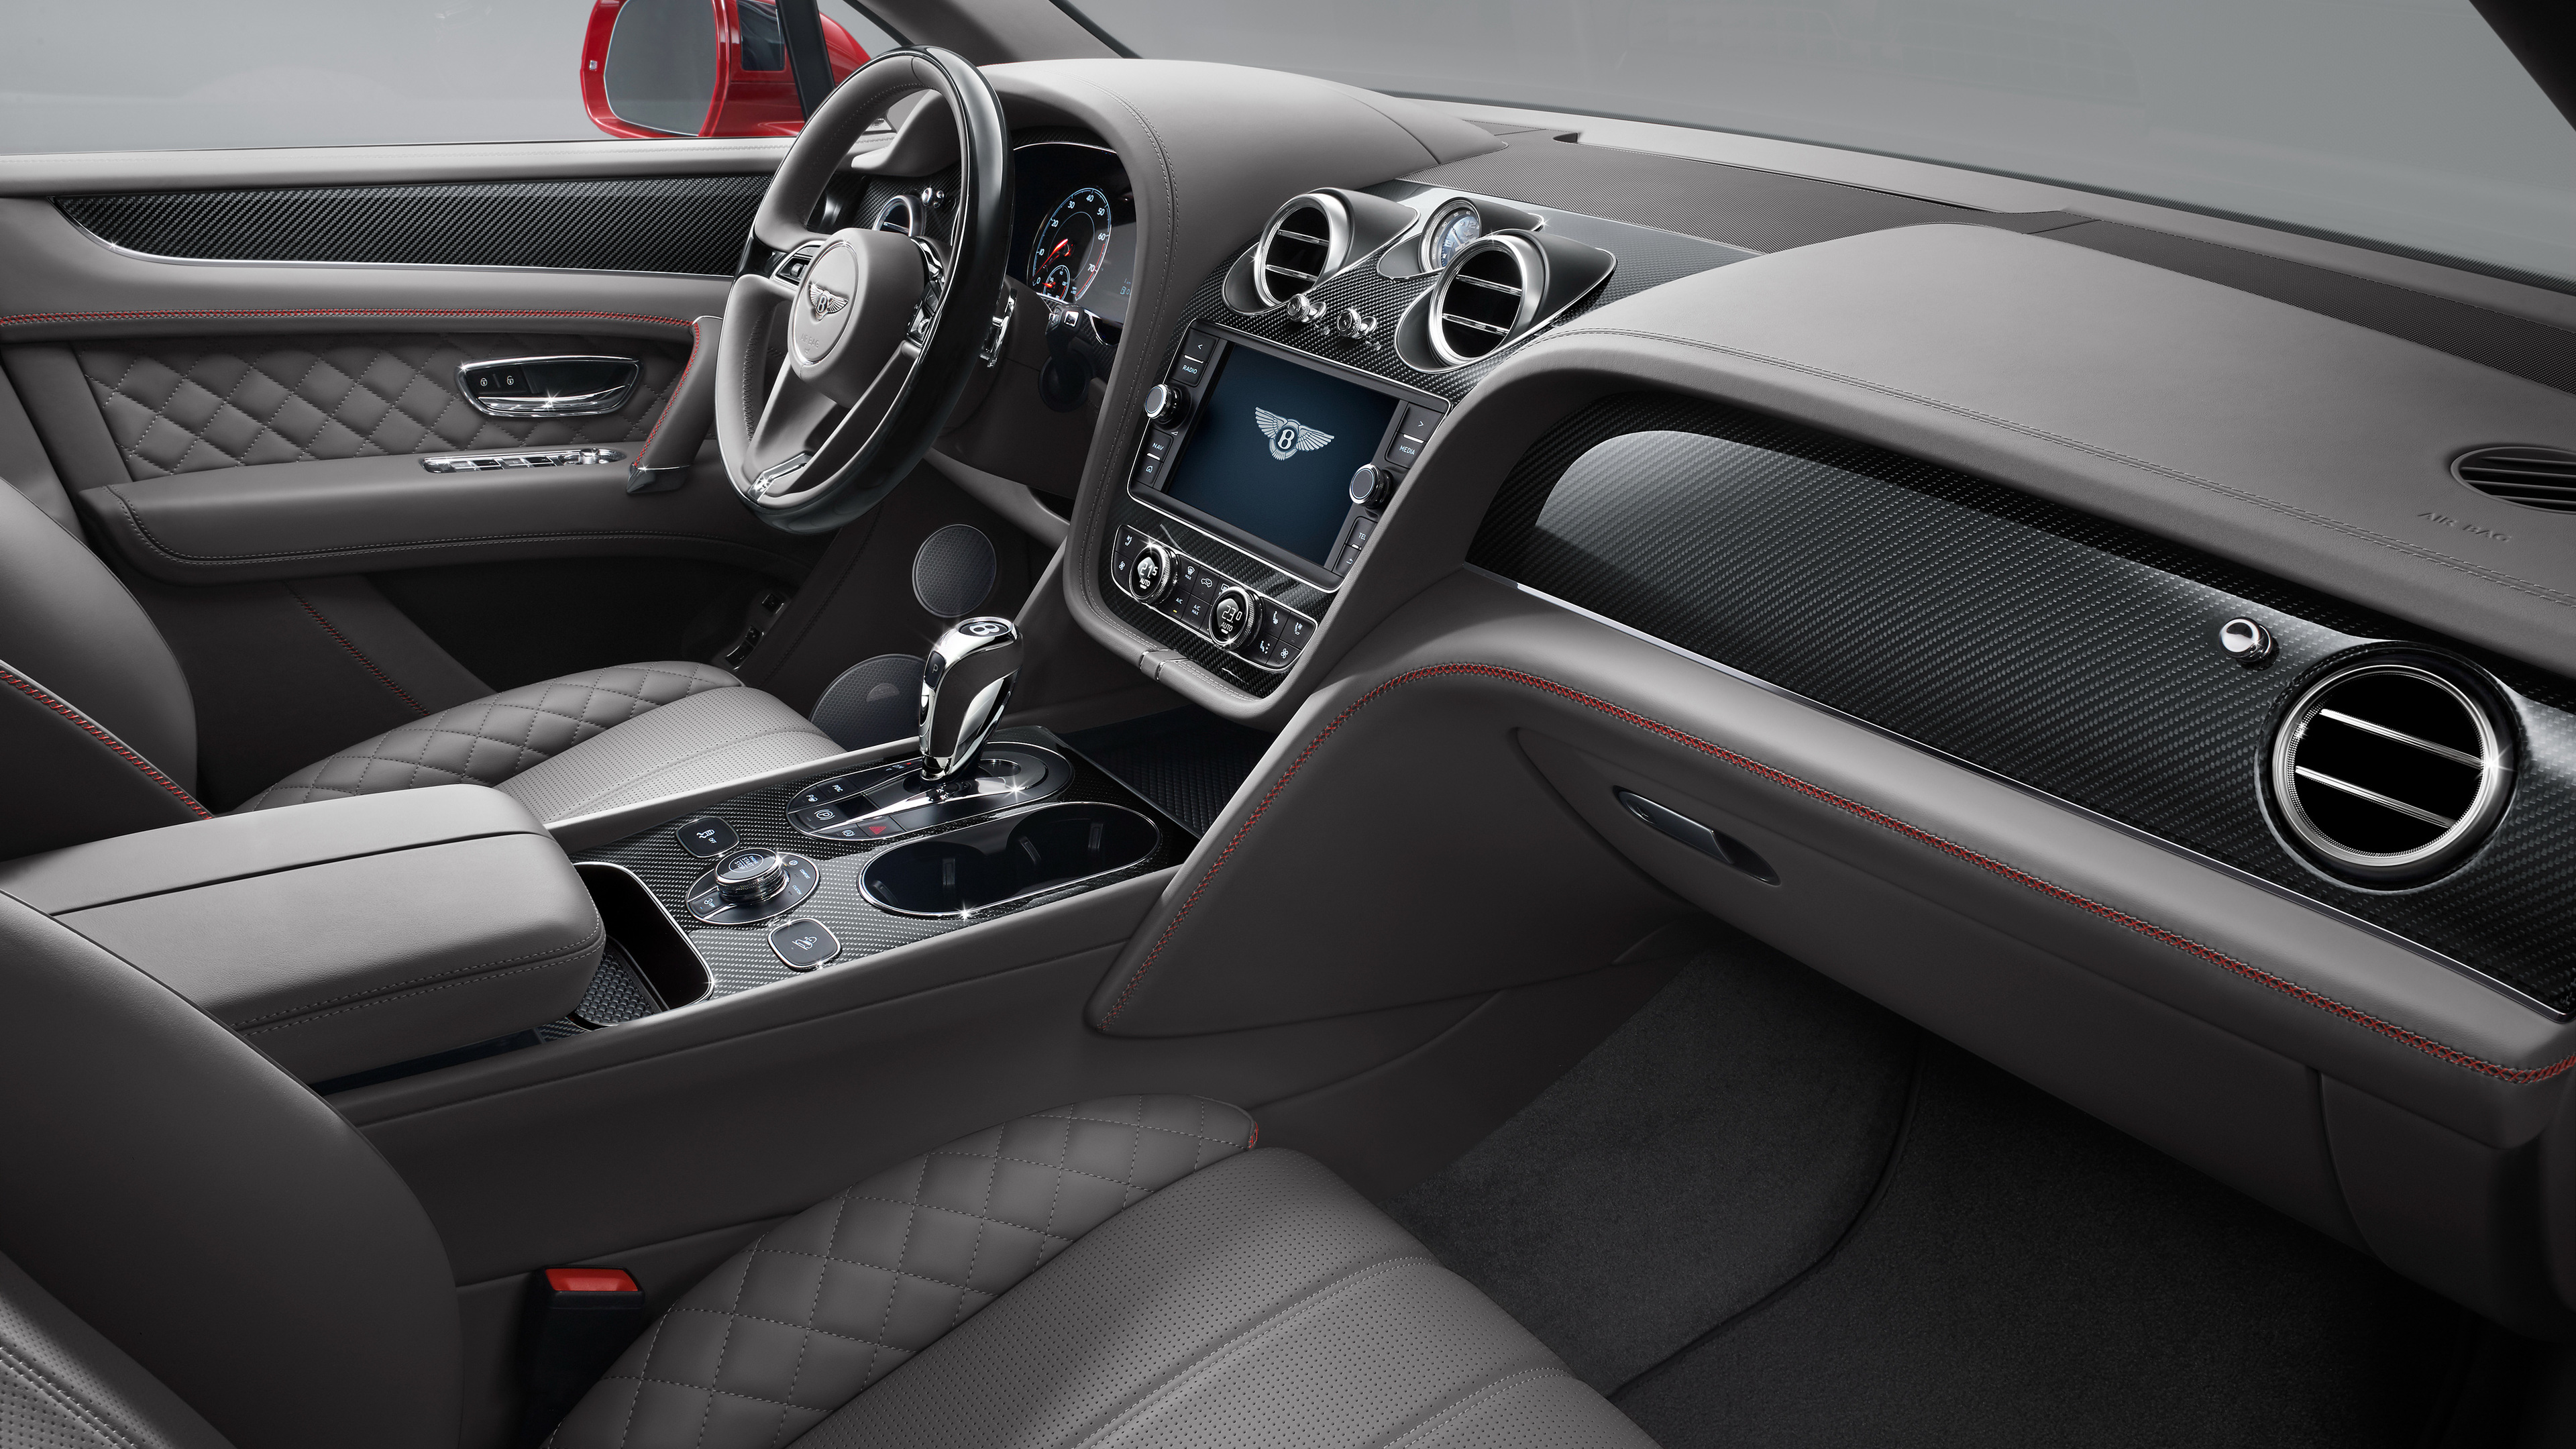 2018 bentley bentayga v8 interior 1539109130 - 2018 Bentley Bentayga V8 Interior - interior wallpapers, hd-wallpapers, cars wallpapers, bentley wallpapers, bentley bentayga wallpapers, 4k-wallpapers, 2018 cars wallpapers